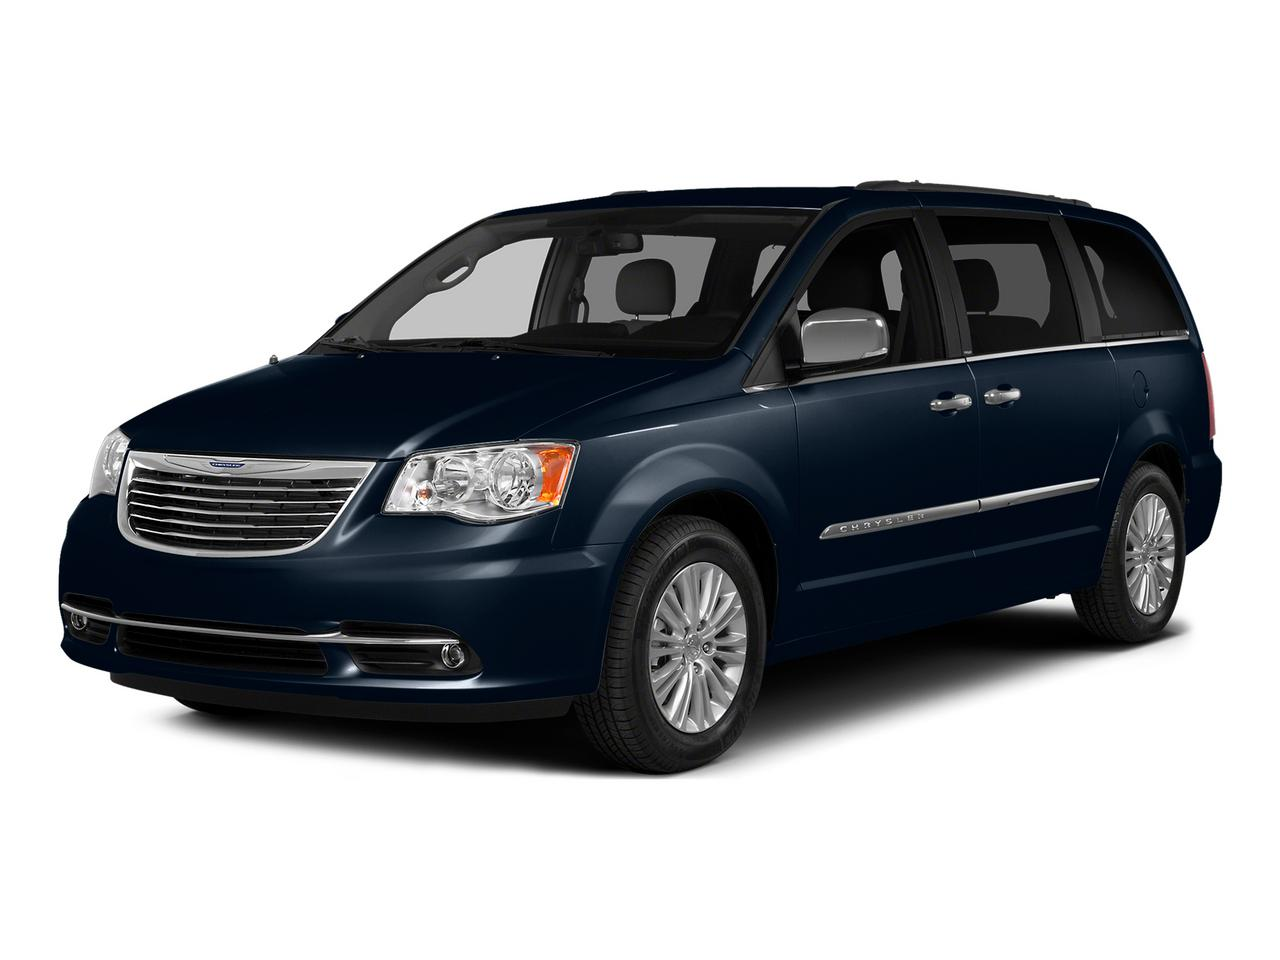 2015 Chrysler Town & Country Vehicle Photo in Jenkintown, PA 19046